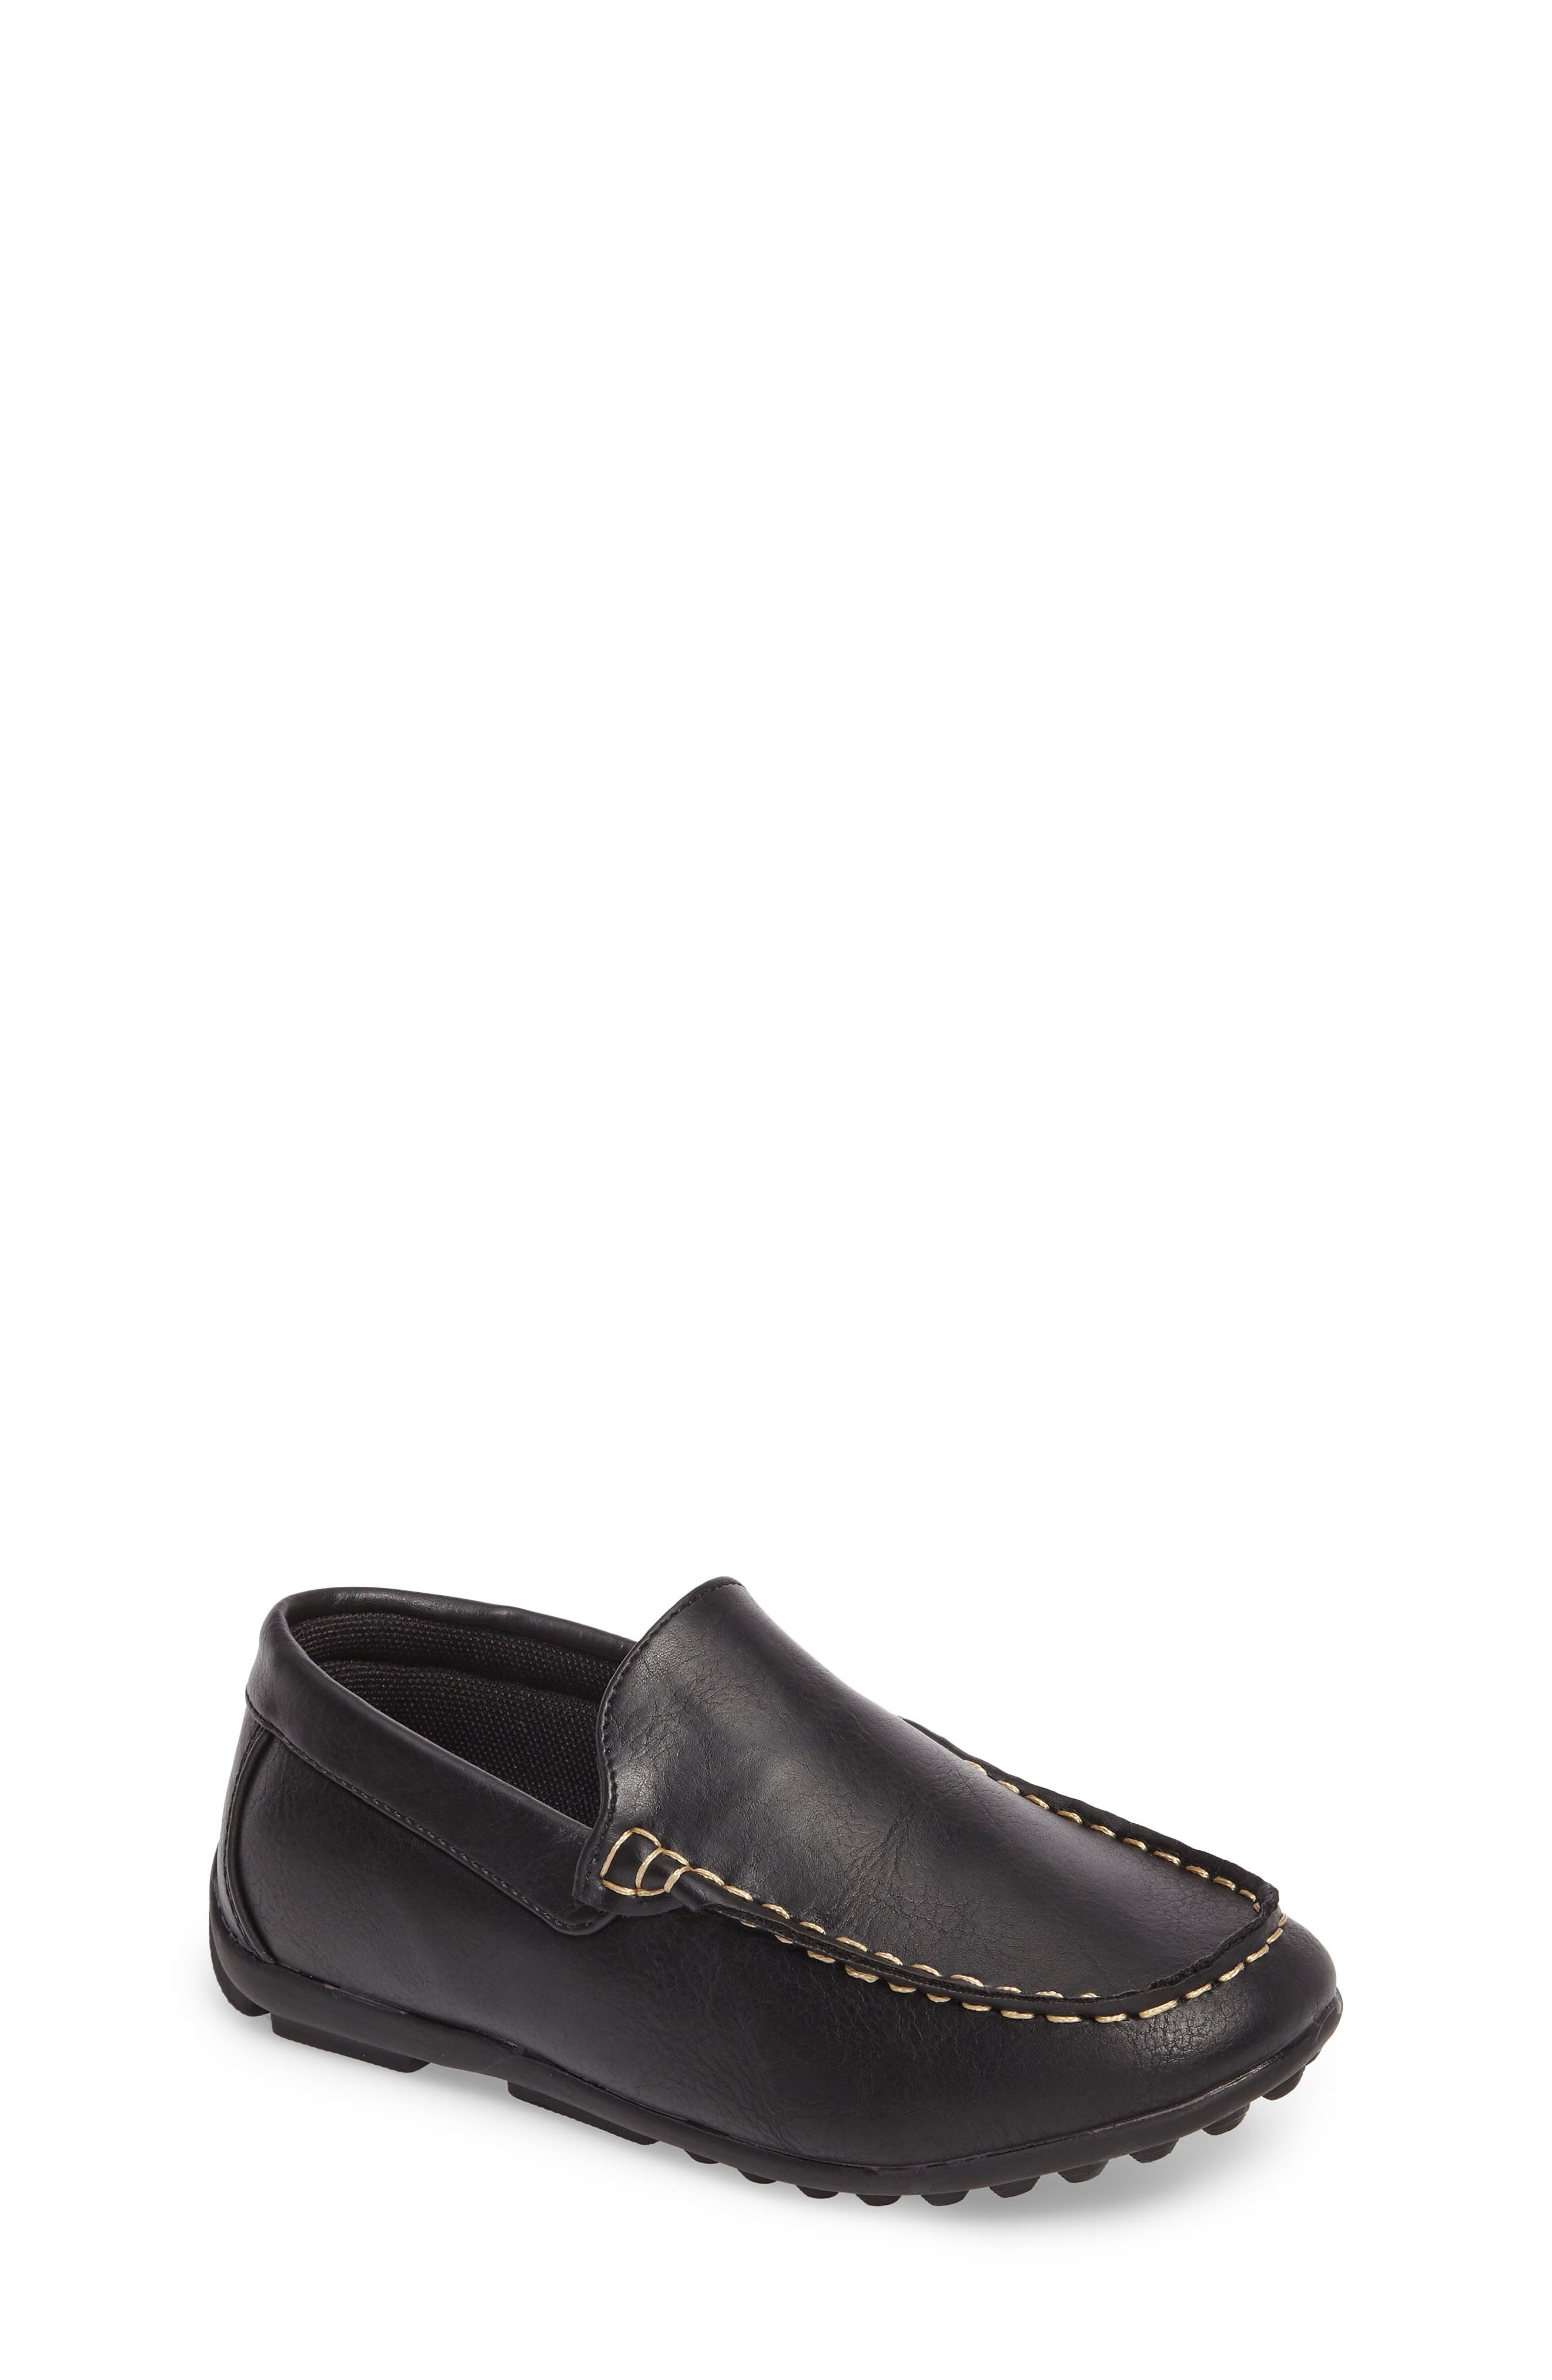 Compton Driving Loafer,                         Main,                         color, BLACK